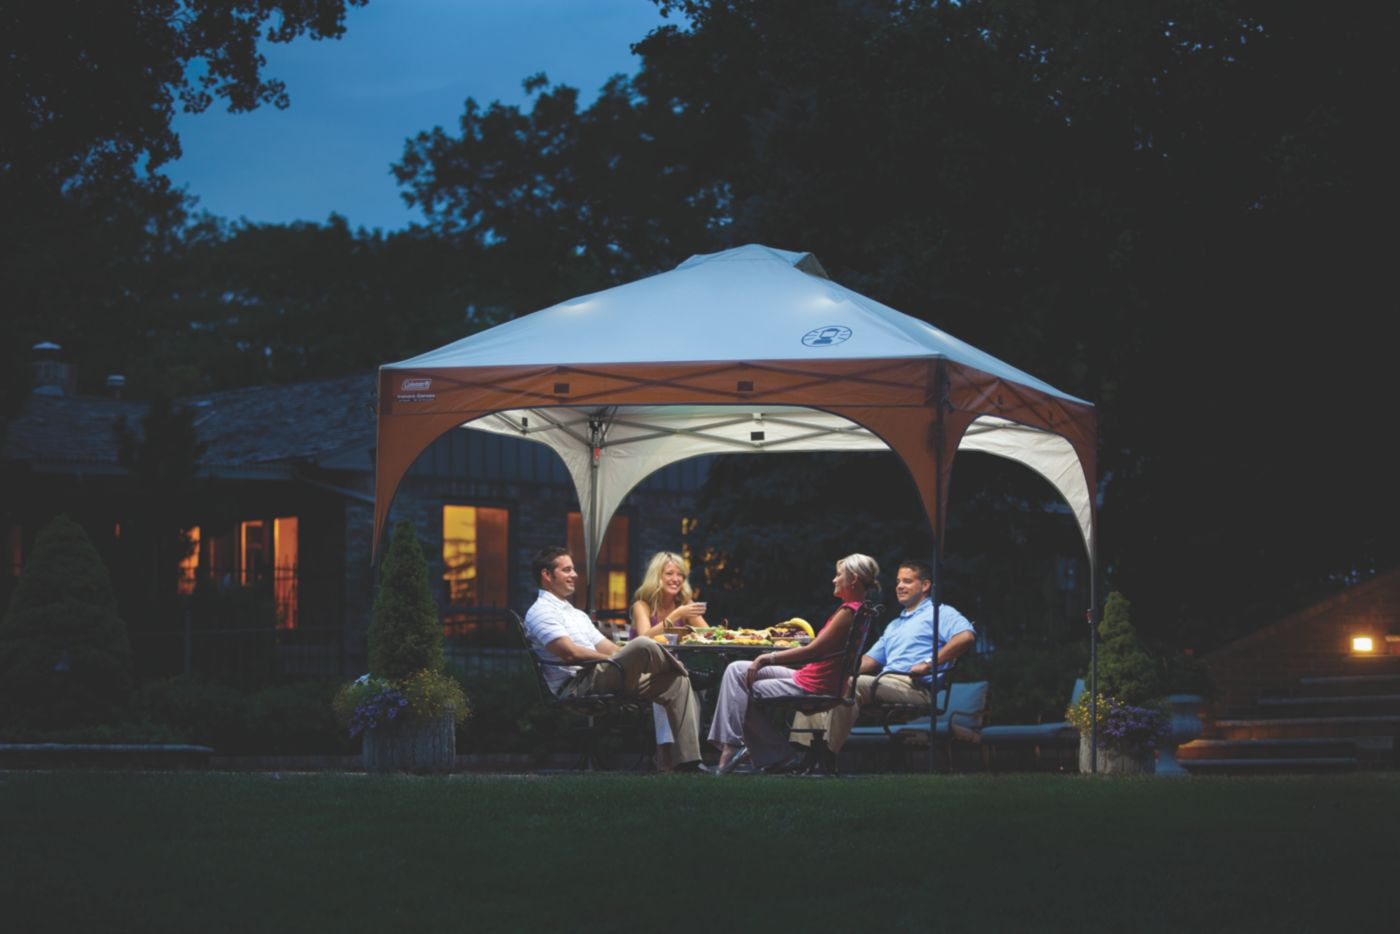 ... 10 x 10 Lighted Instant Canopy image 2 ...  sc 1 st  Coleman & 10 x 10 Lighted Instant Canopy | Coleman